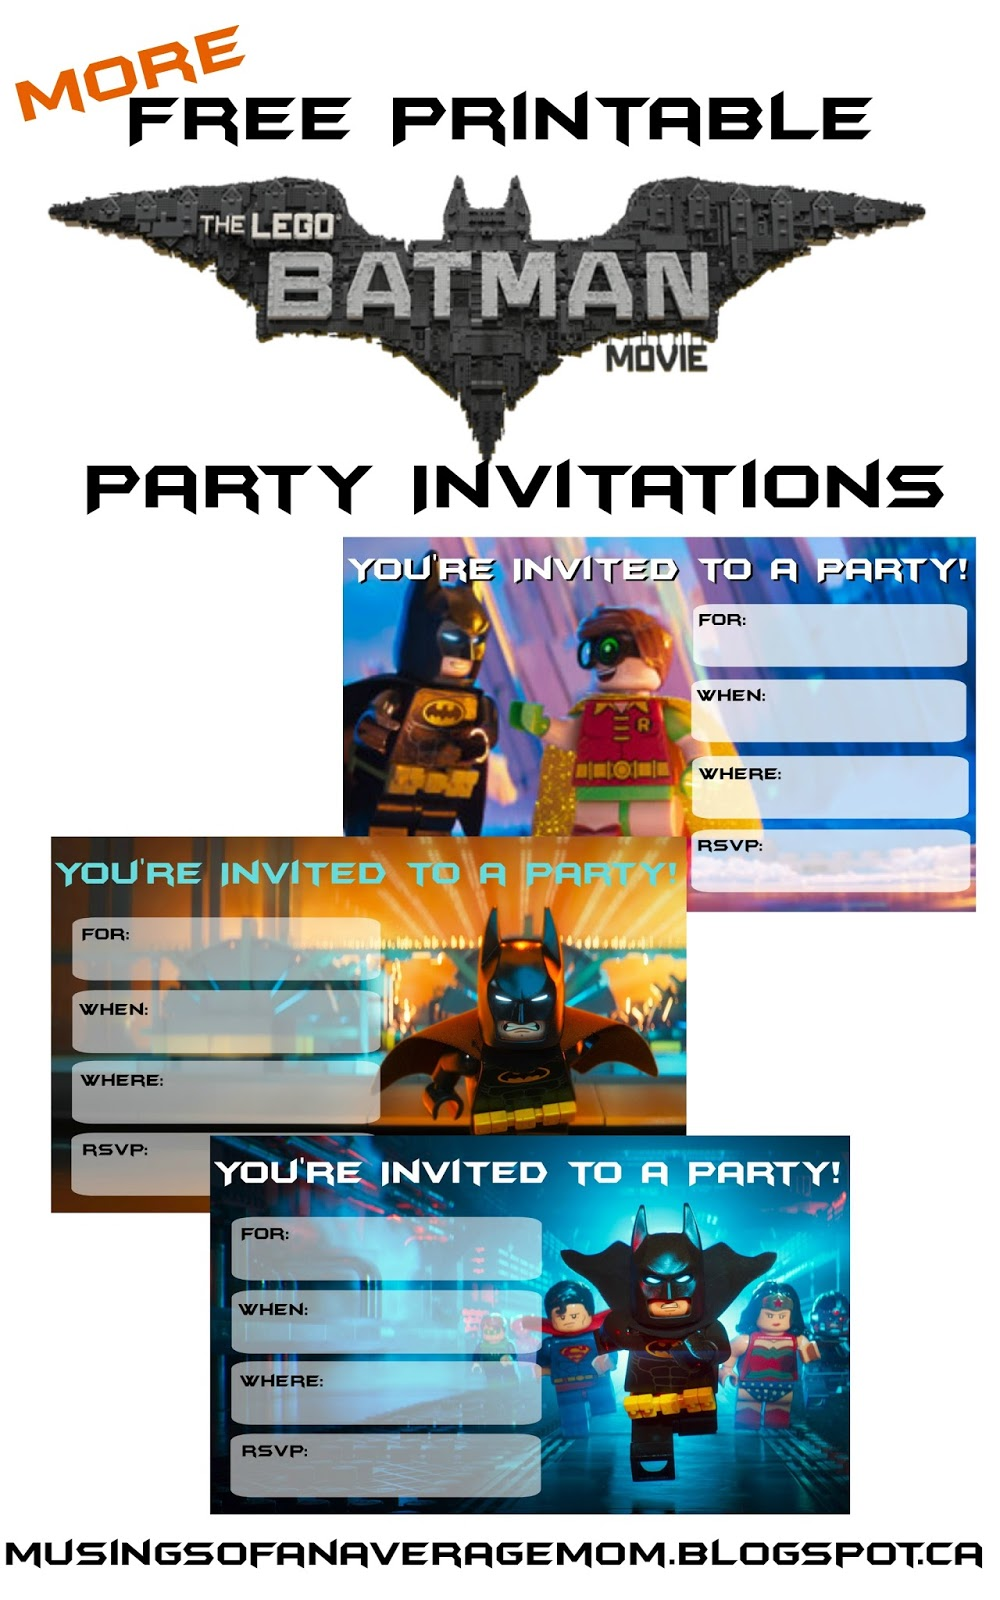 Musings of an Average Mom: Everything you need for a Lego Batman Party